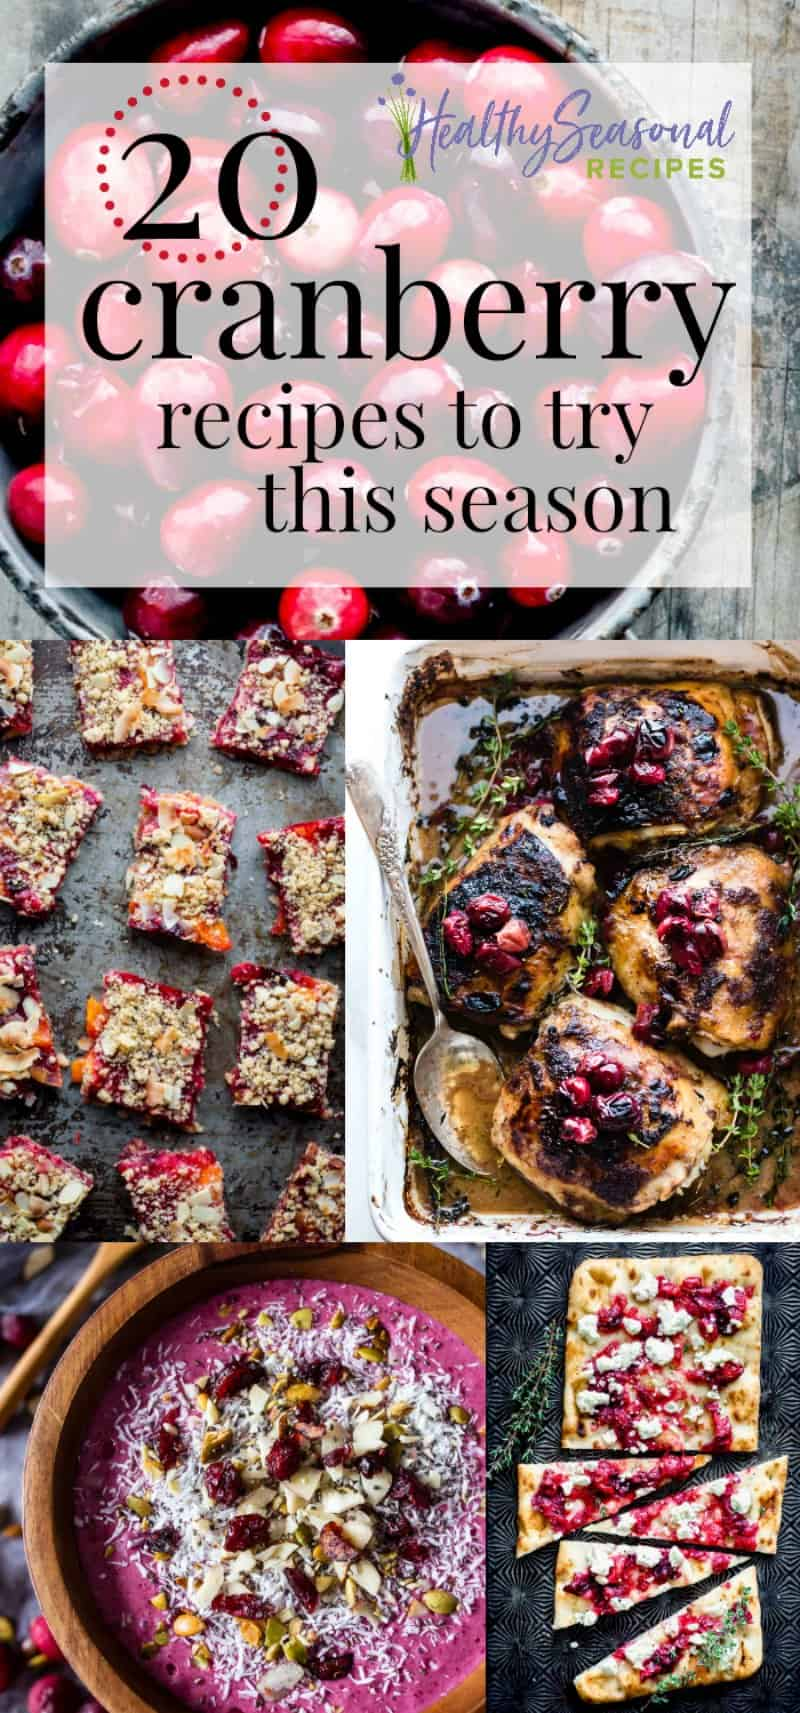 20 cranberry recipes to try this season